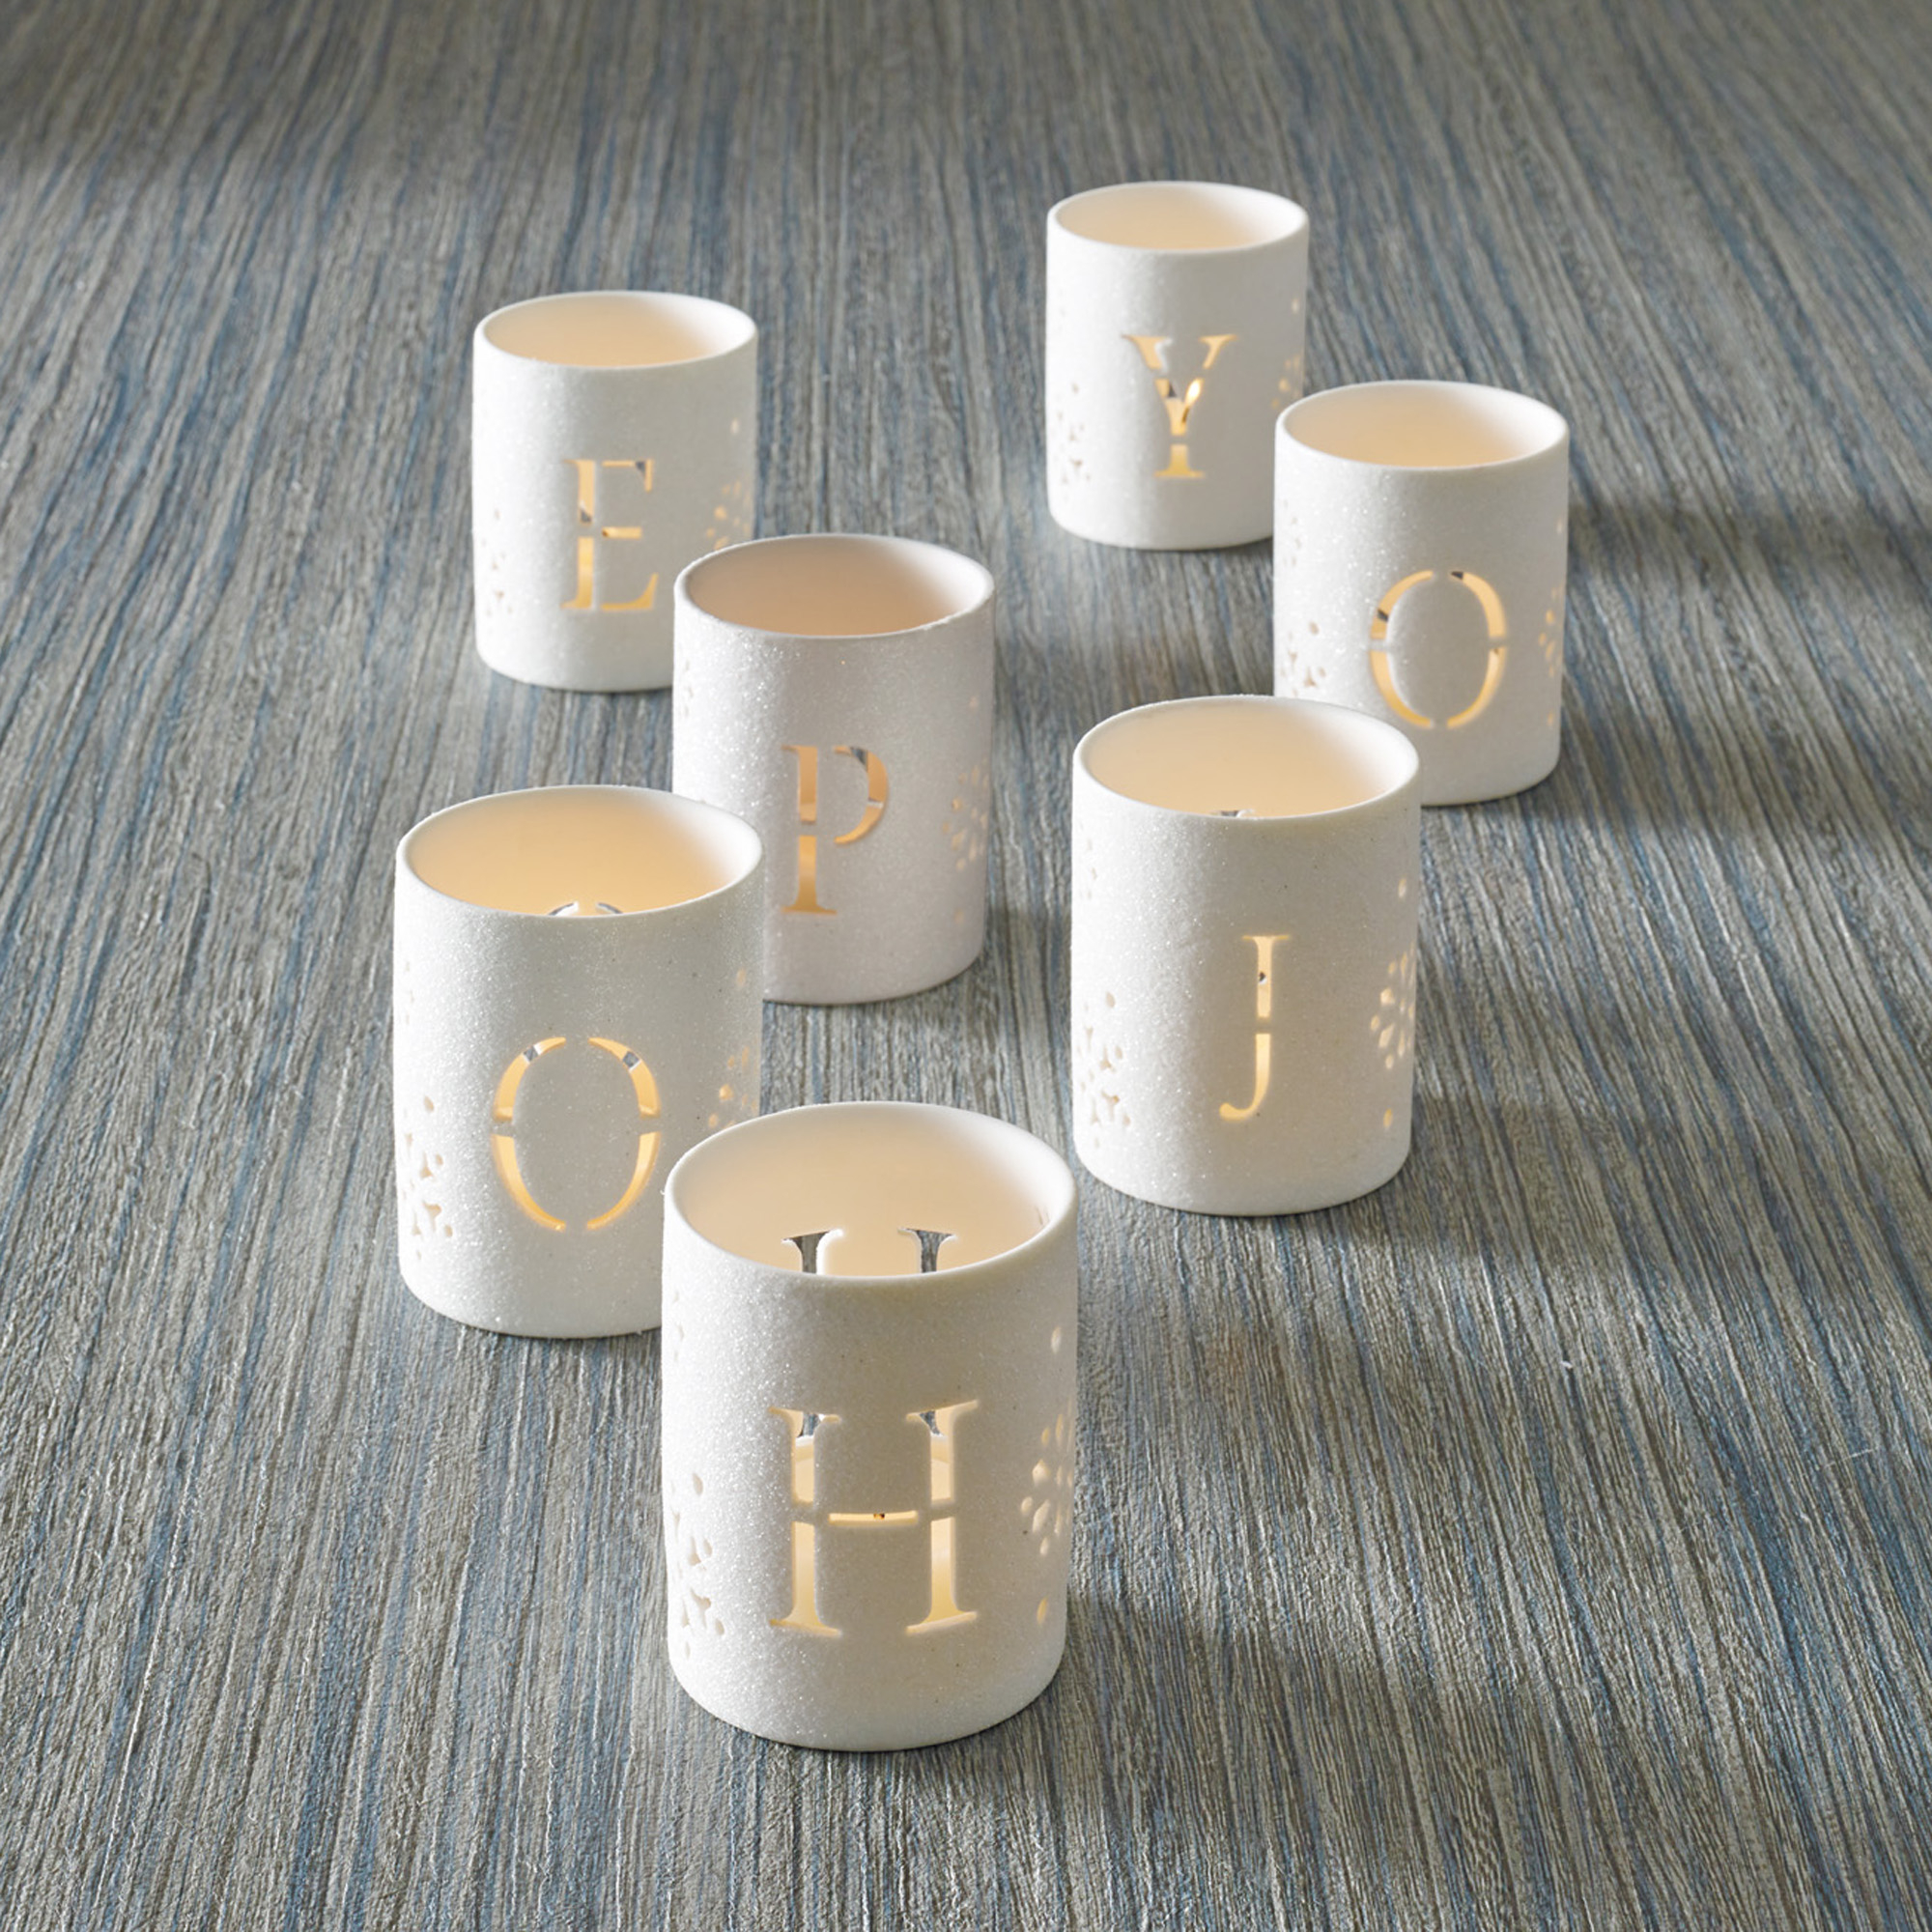 Joy & Hope Votive Holders